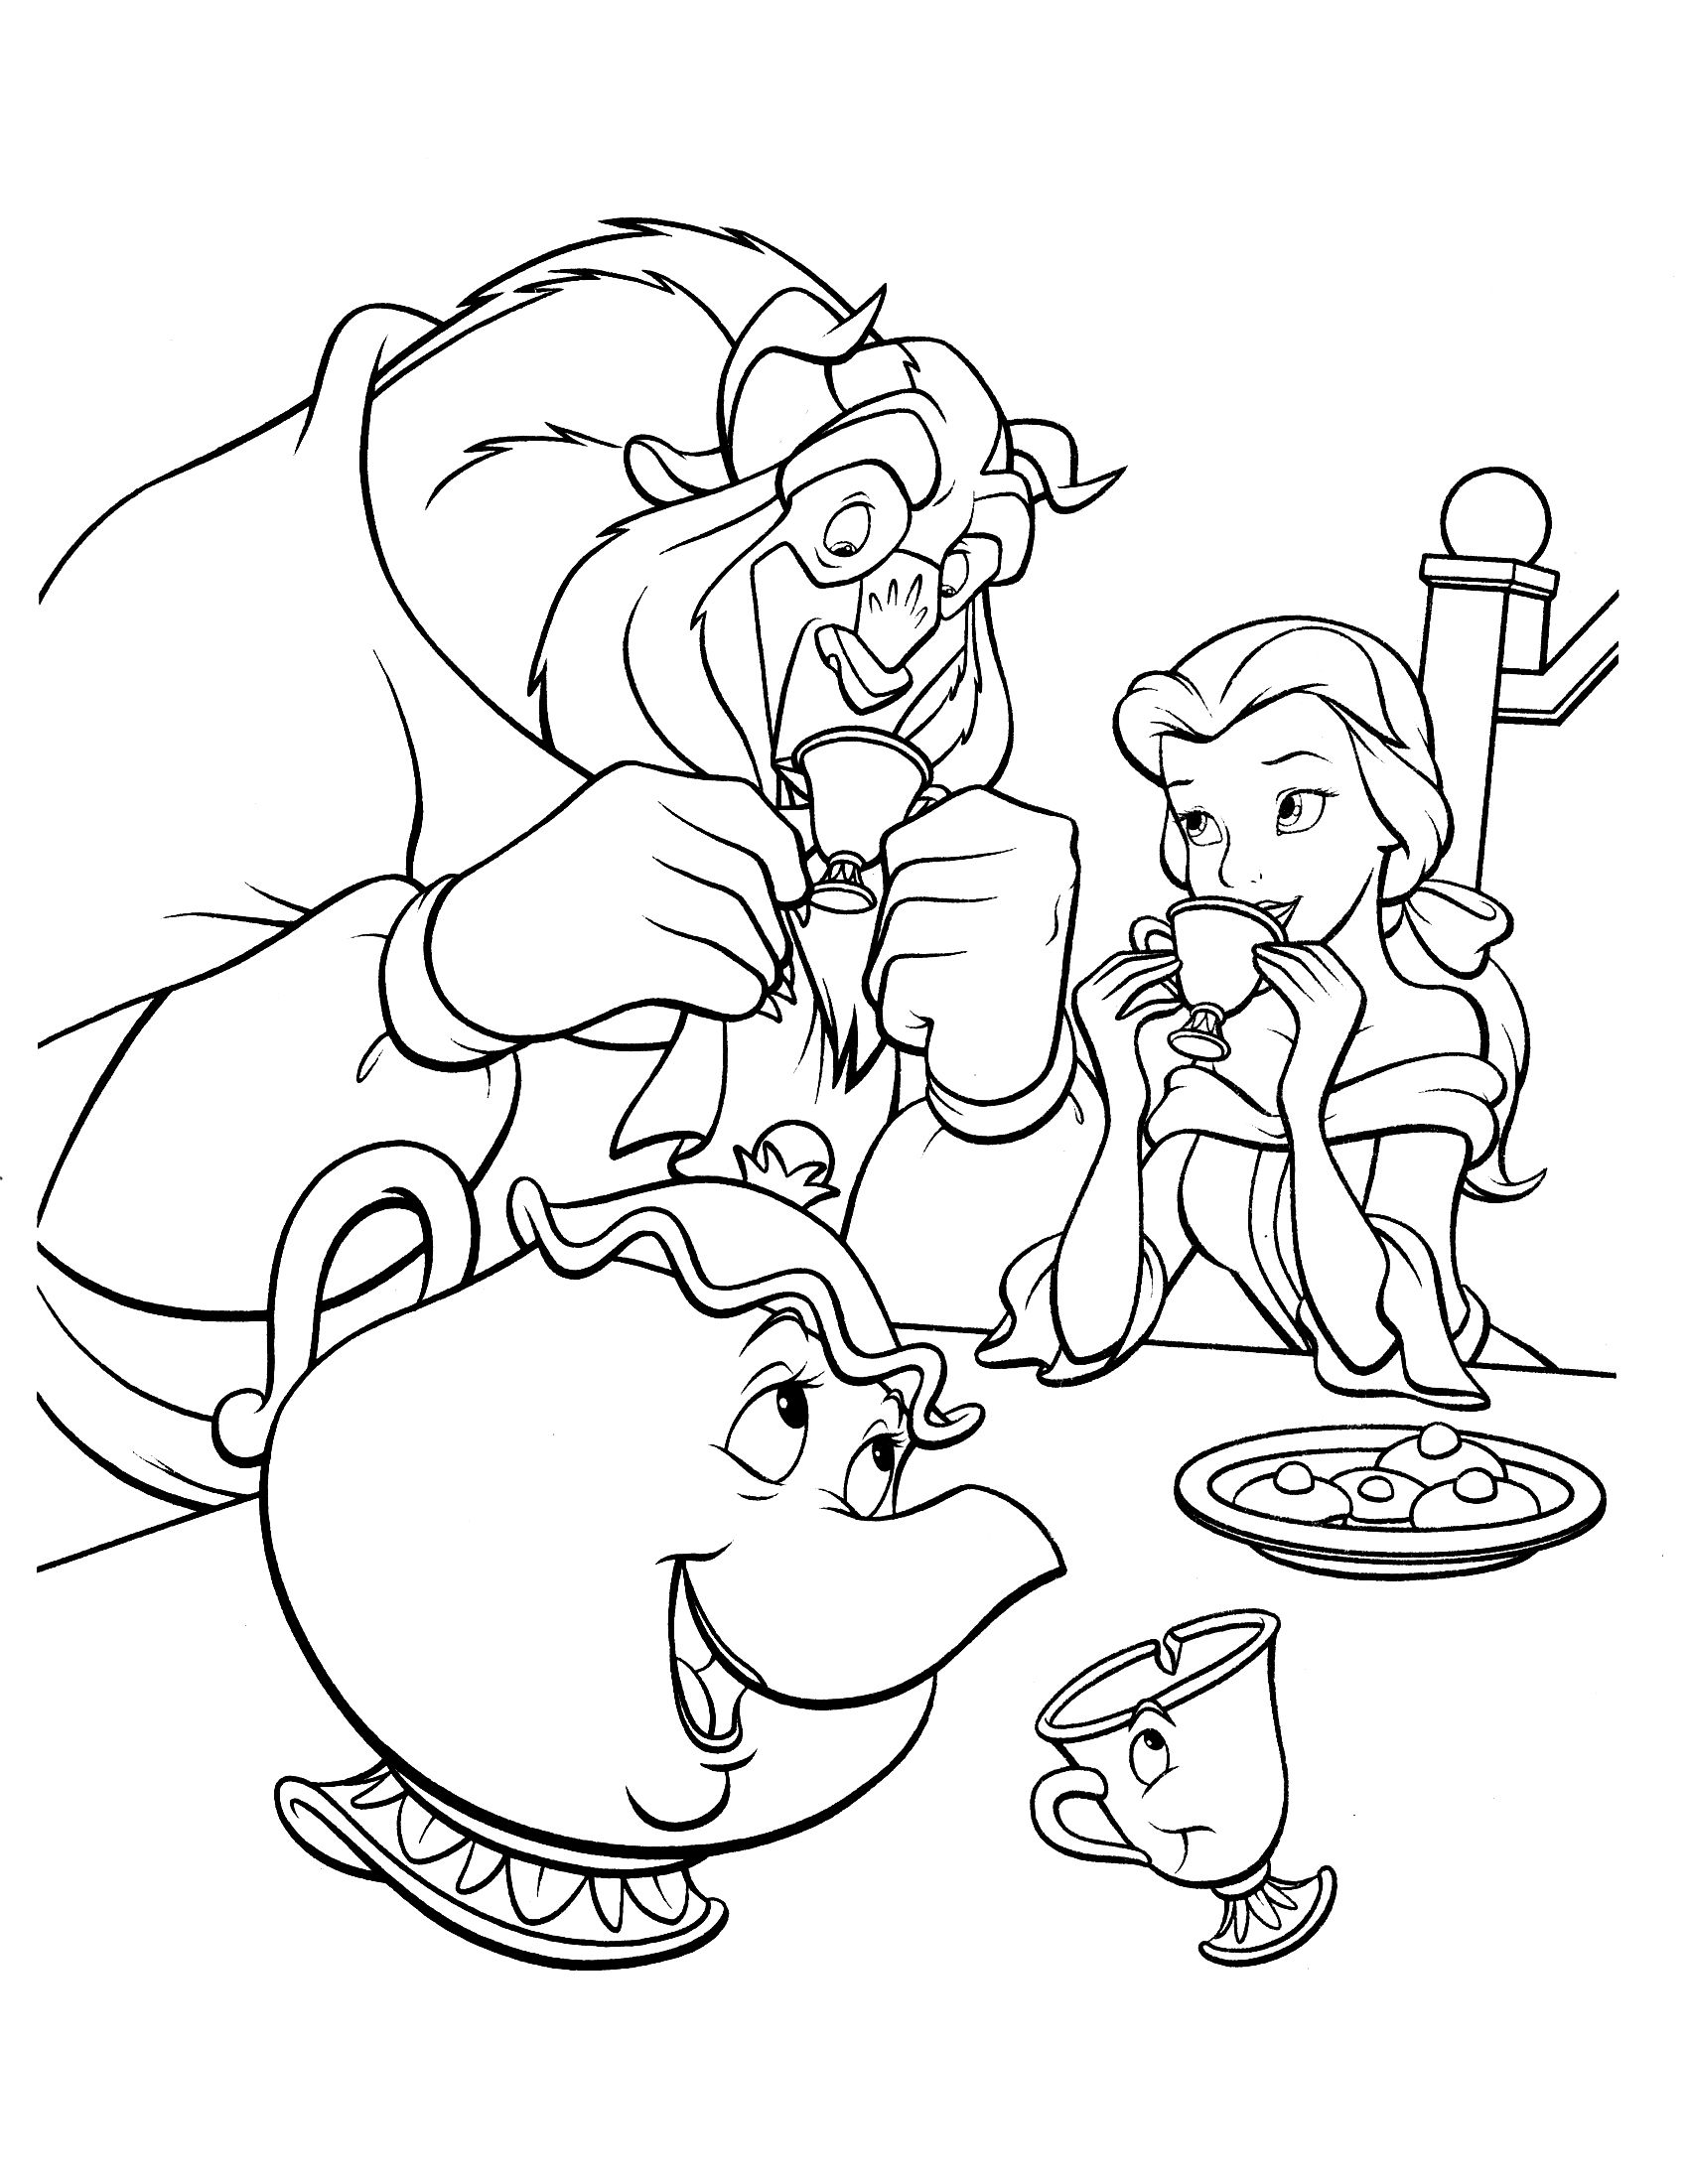 beauty and the beast coloring page | Pintar | Pinterest ...